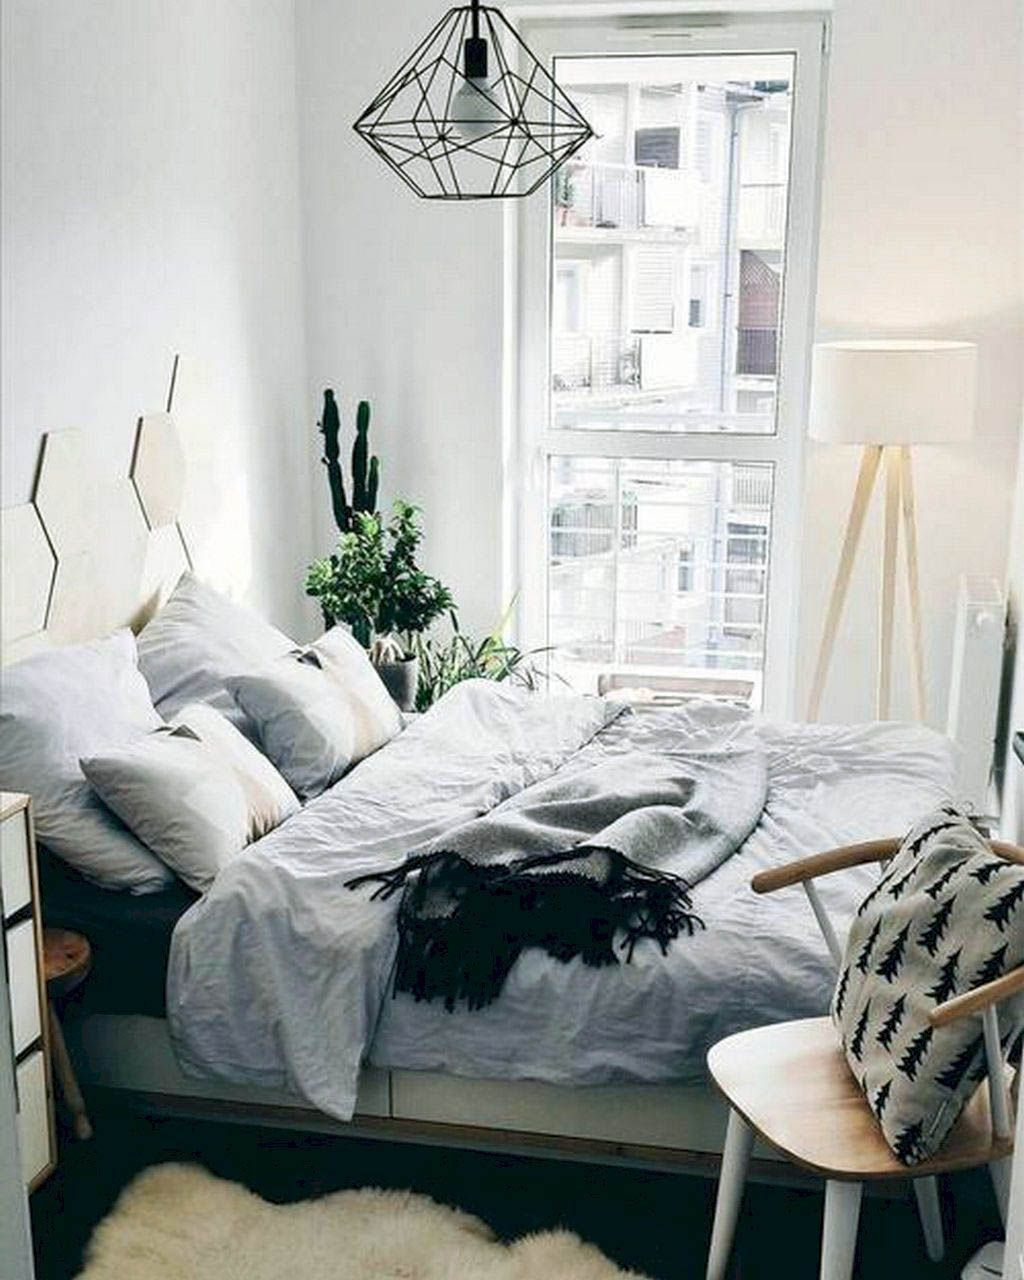 Trendy Cool Bedroom Ideas For Teenage Guys Small Rooms Uk That Look Beautiful Small Bedroom Ideas On A Budget Small Bedroom Decor Cozy Small Bedrooms